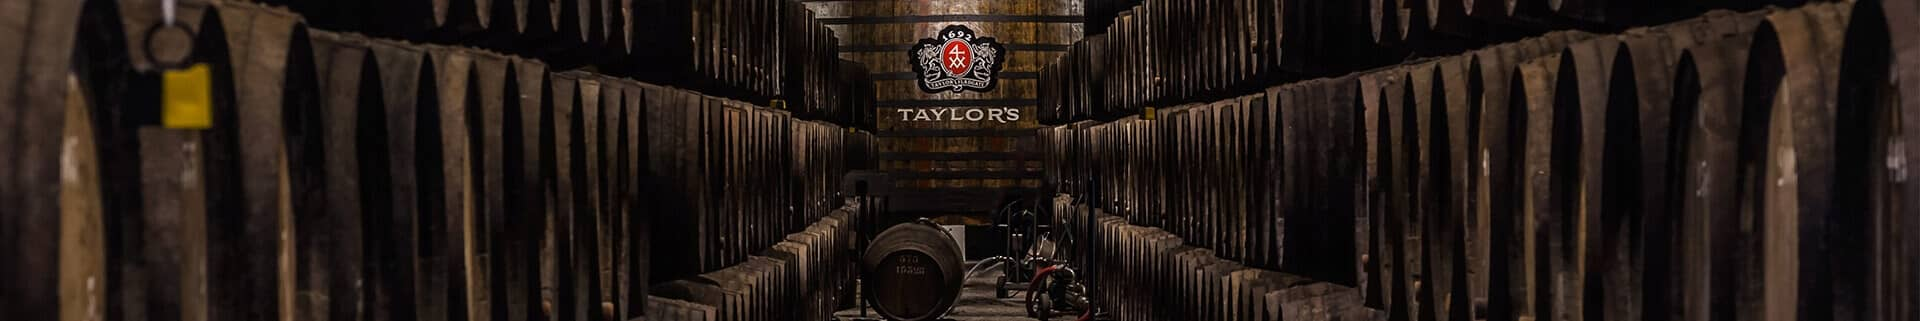 For many, Taylor Fladgate is the archetypal Port house and its wines the quintessential Ports. Established over three centuries ago in 1692,...